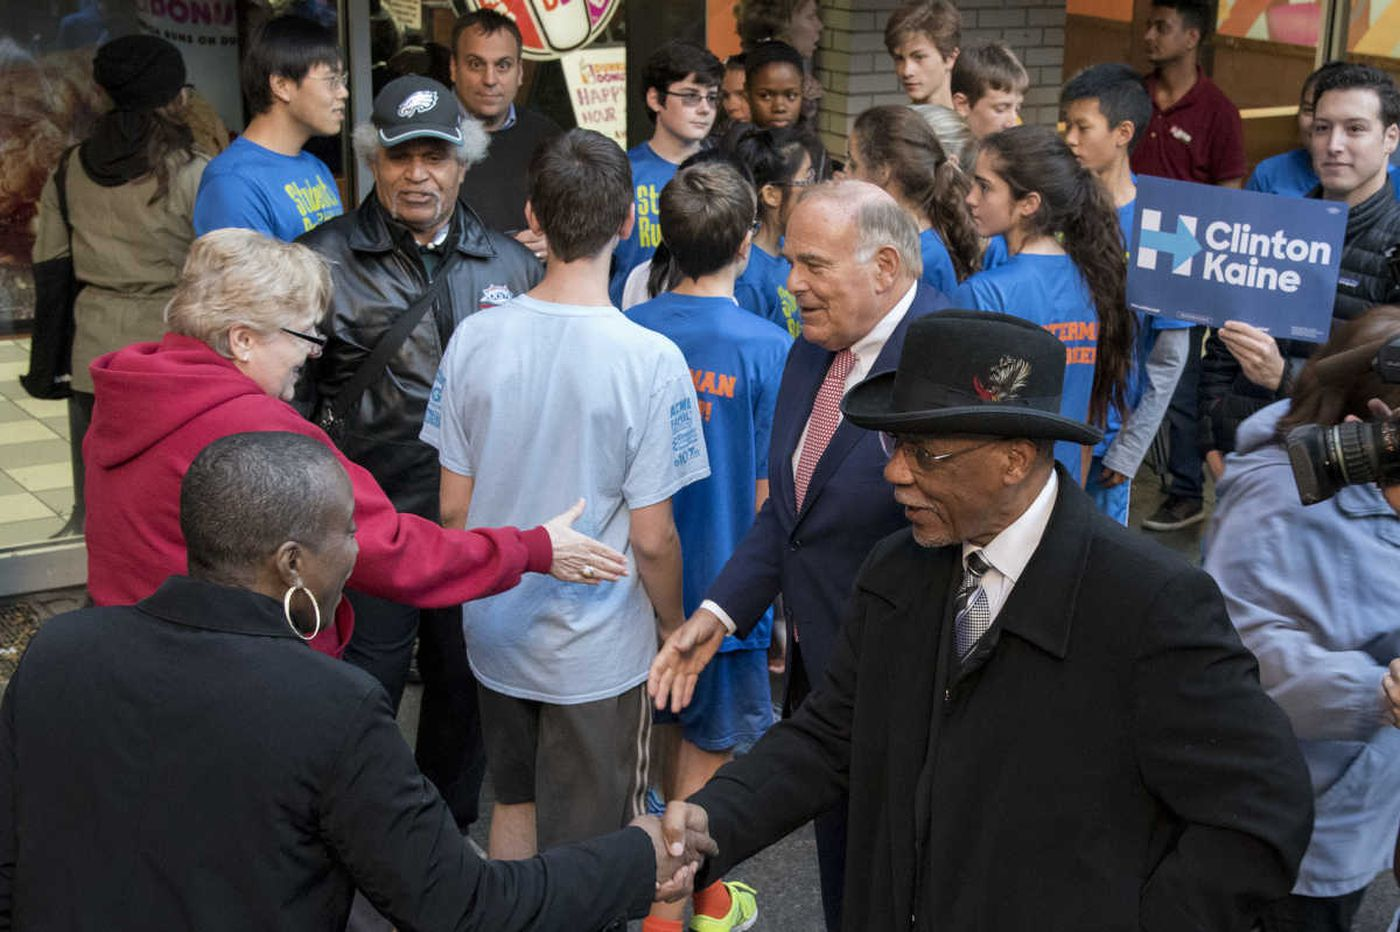 Talk of racial math in Philly elections doesn't add up